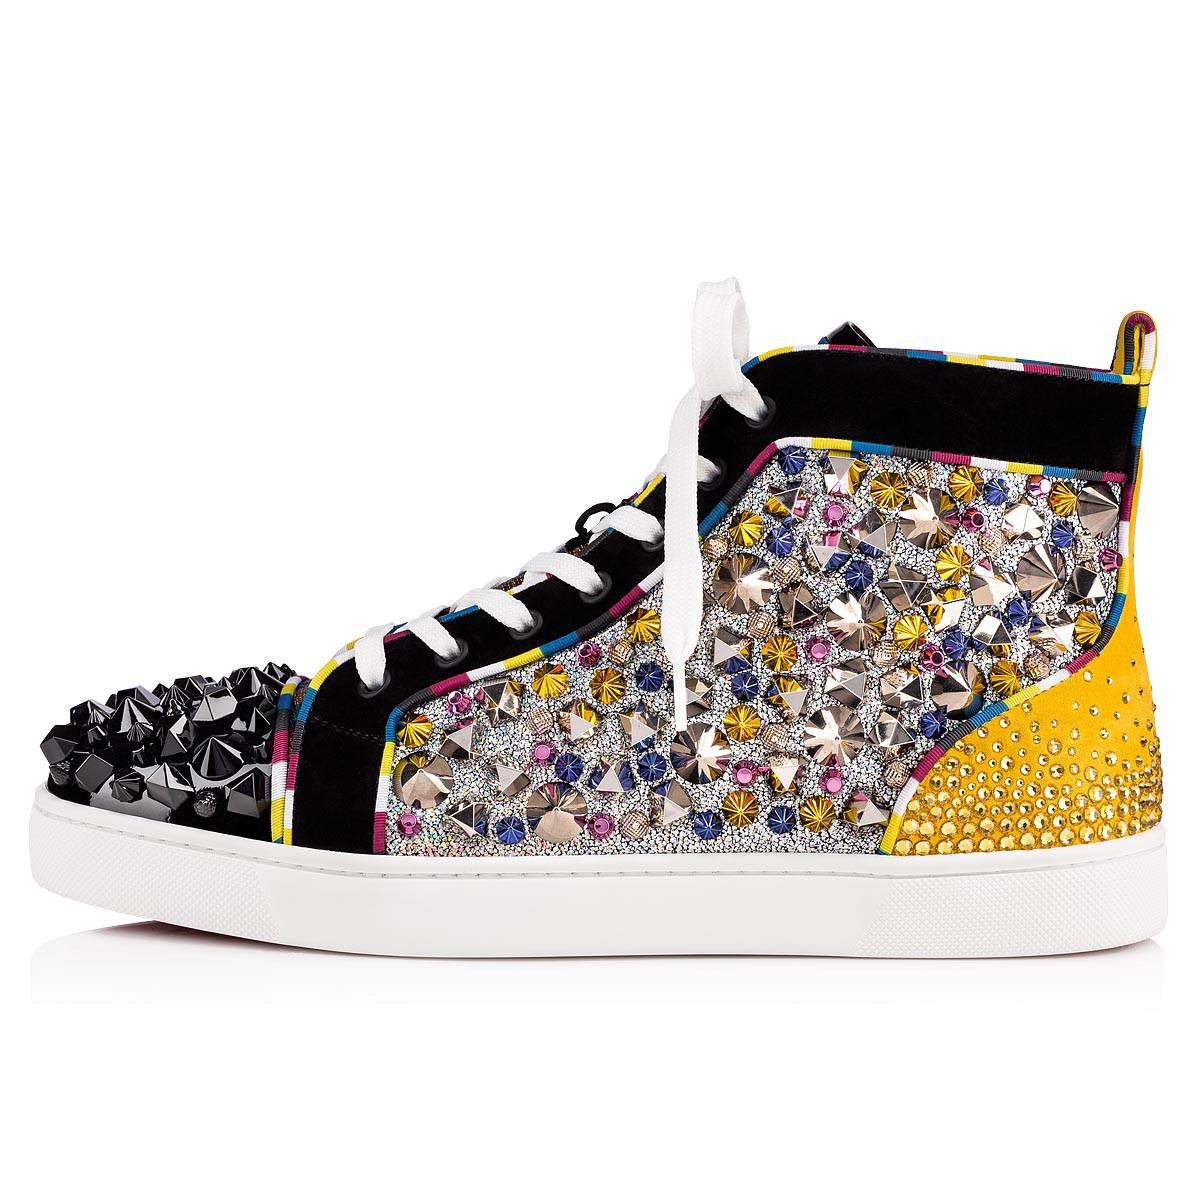 ad32967ed419 Christian Louboutin - Multicolor Remix Men s Flat for Men - Lyst. View  fullscreen